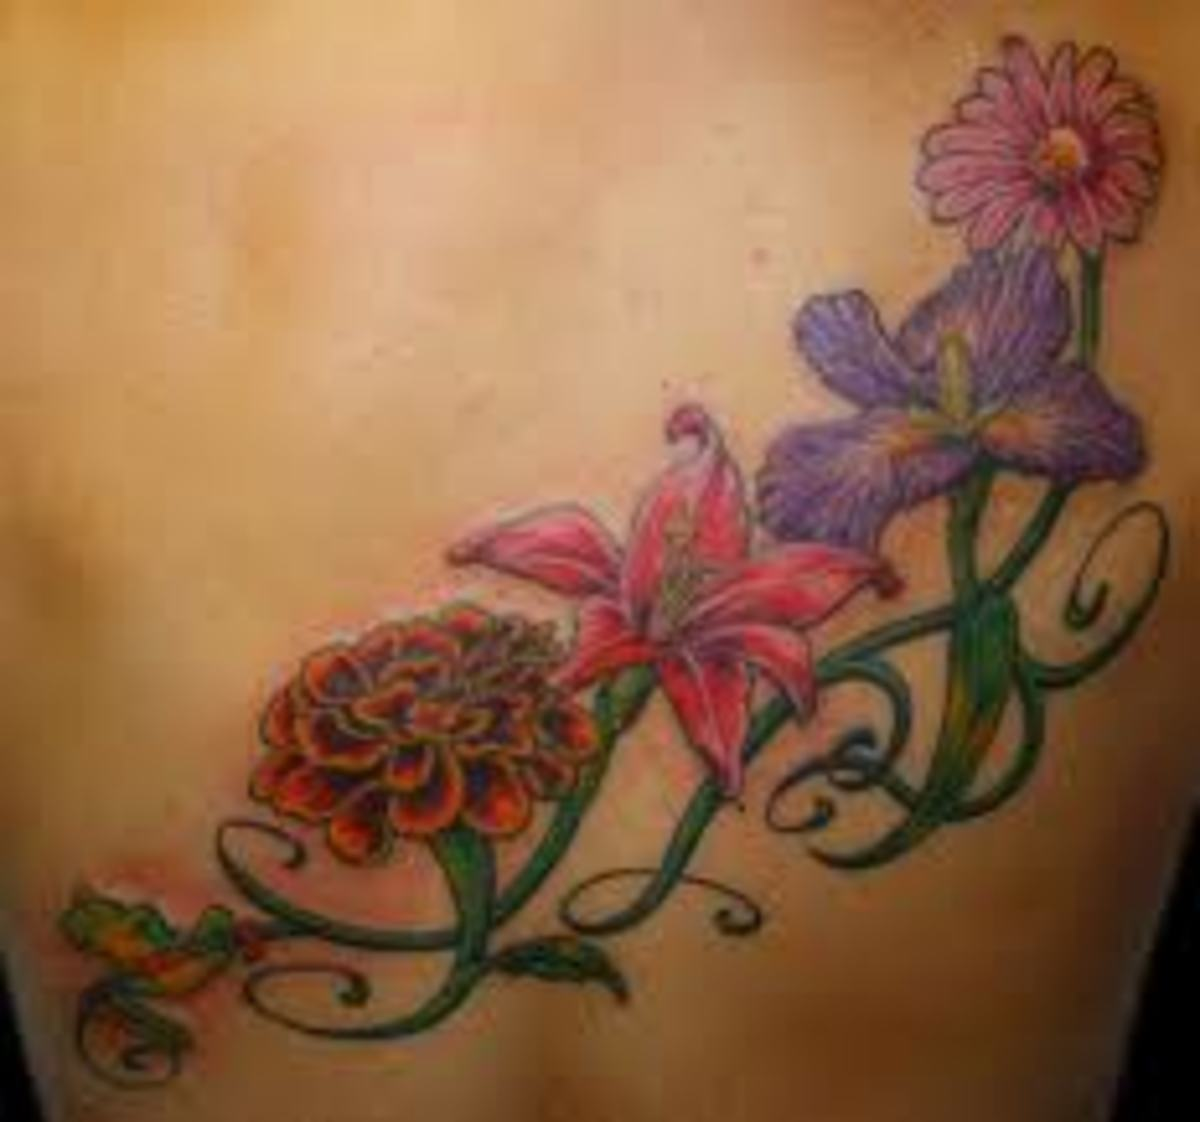 Vine Tattoos And Vine Tattoo Meanings-Vine Tattoo Designs